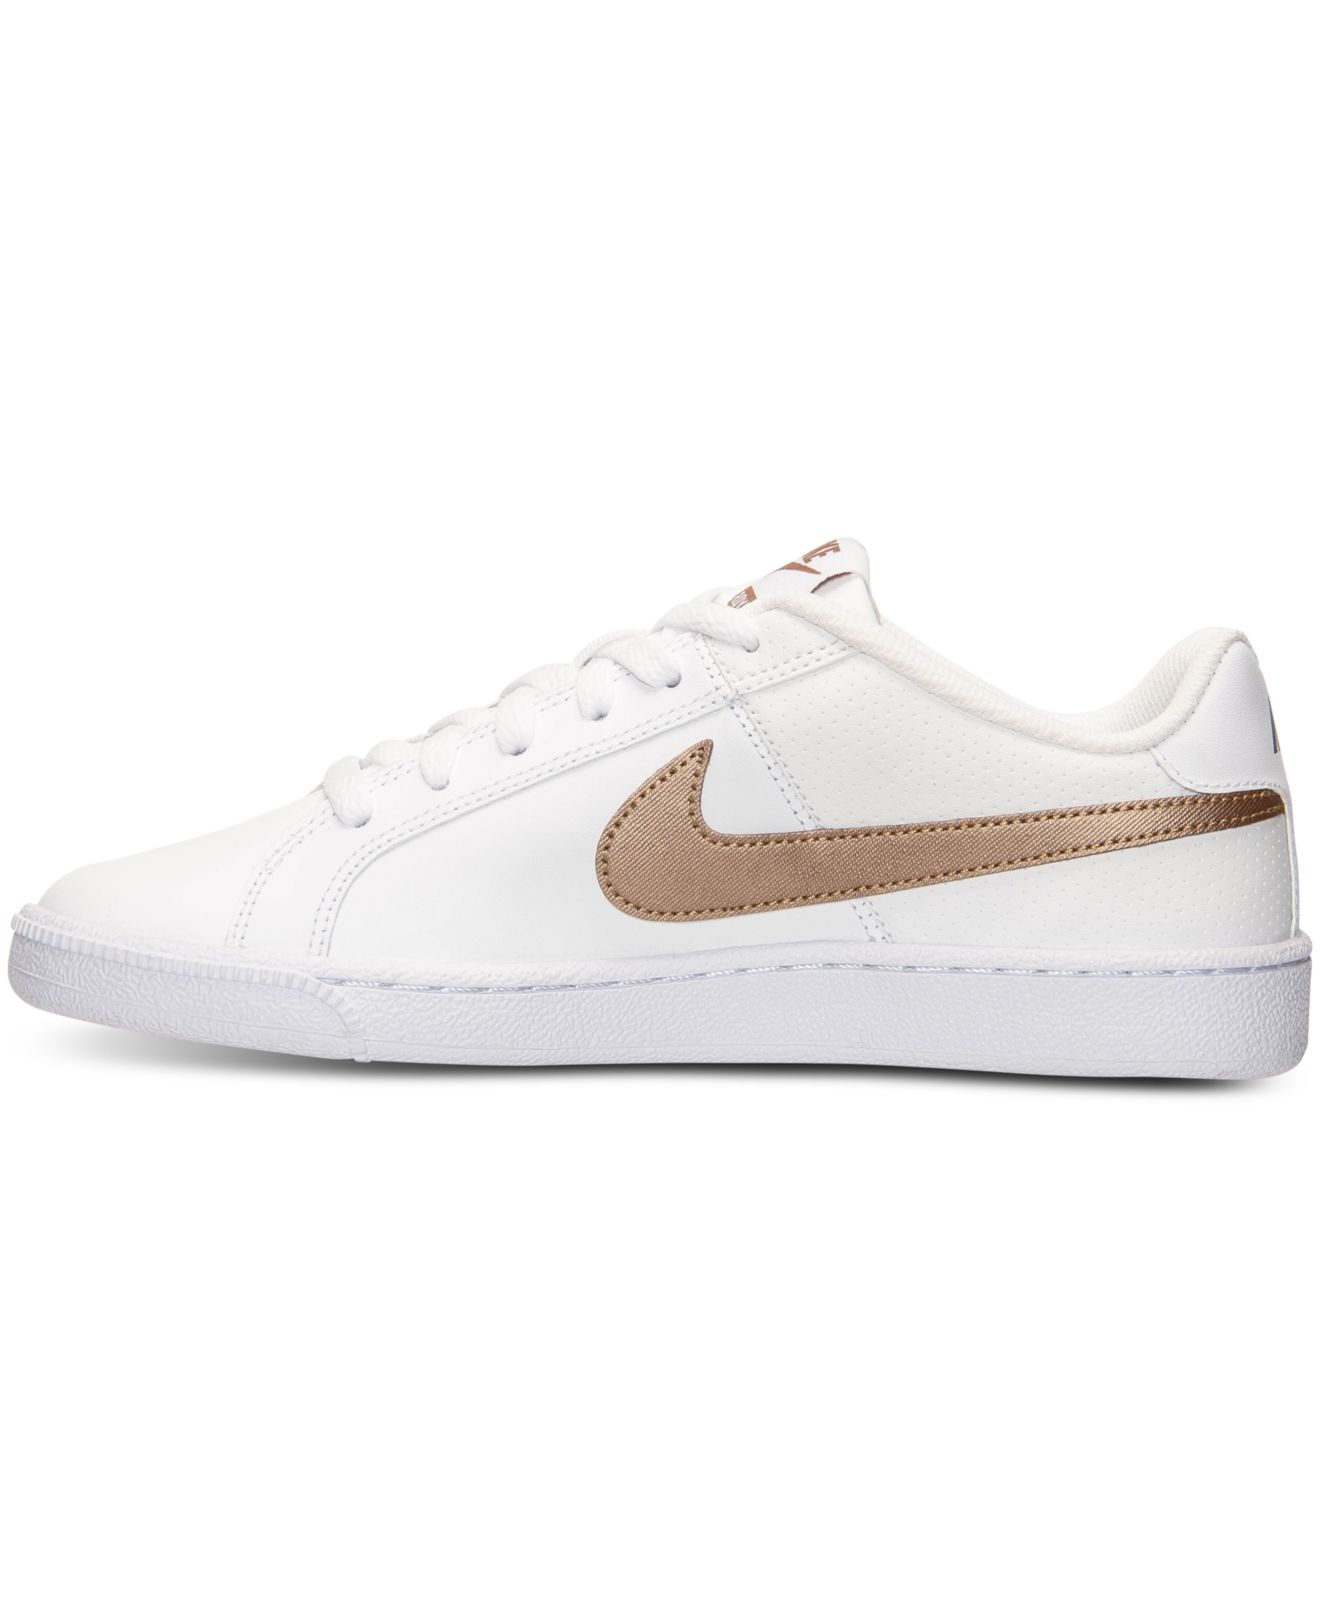 Lyst - Nike Women s Court Royale Casual Sneakers From Finish Line in ... 4df4051fa7c9